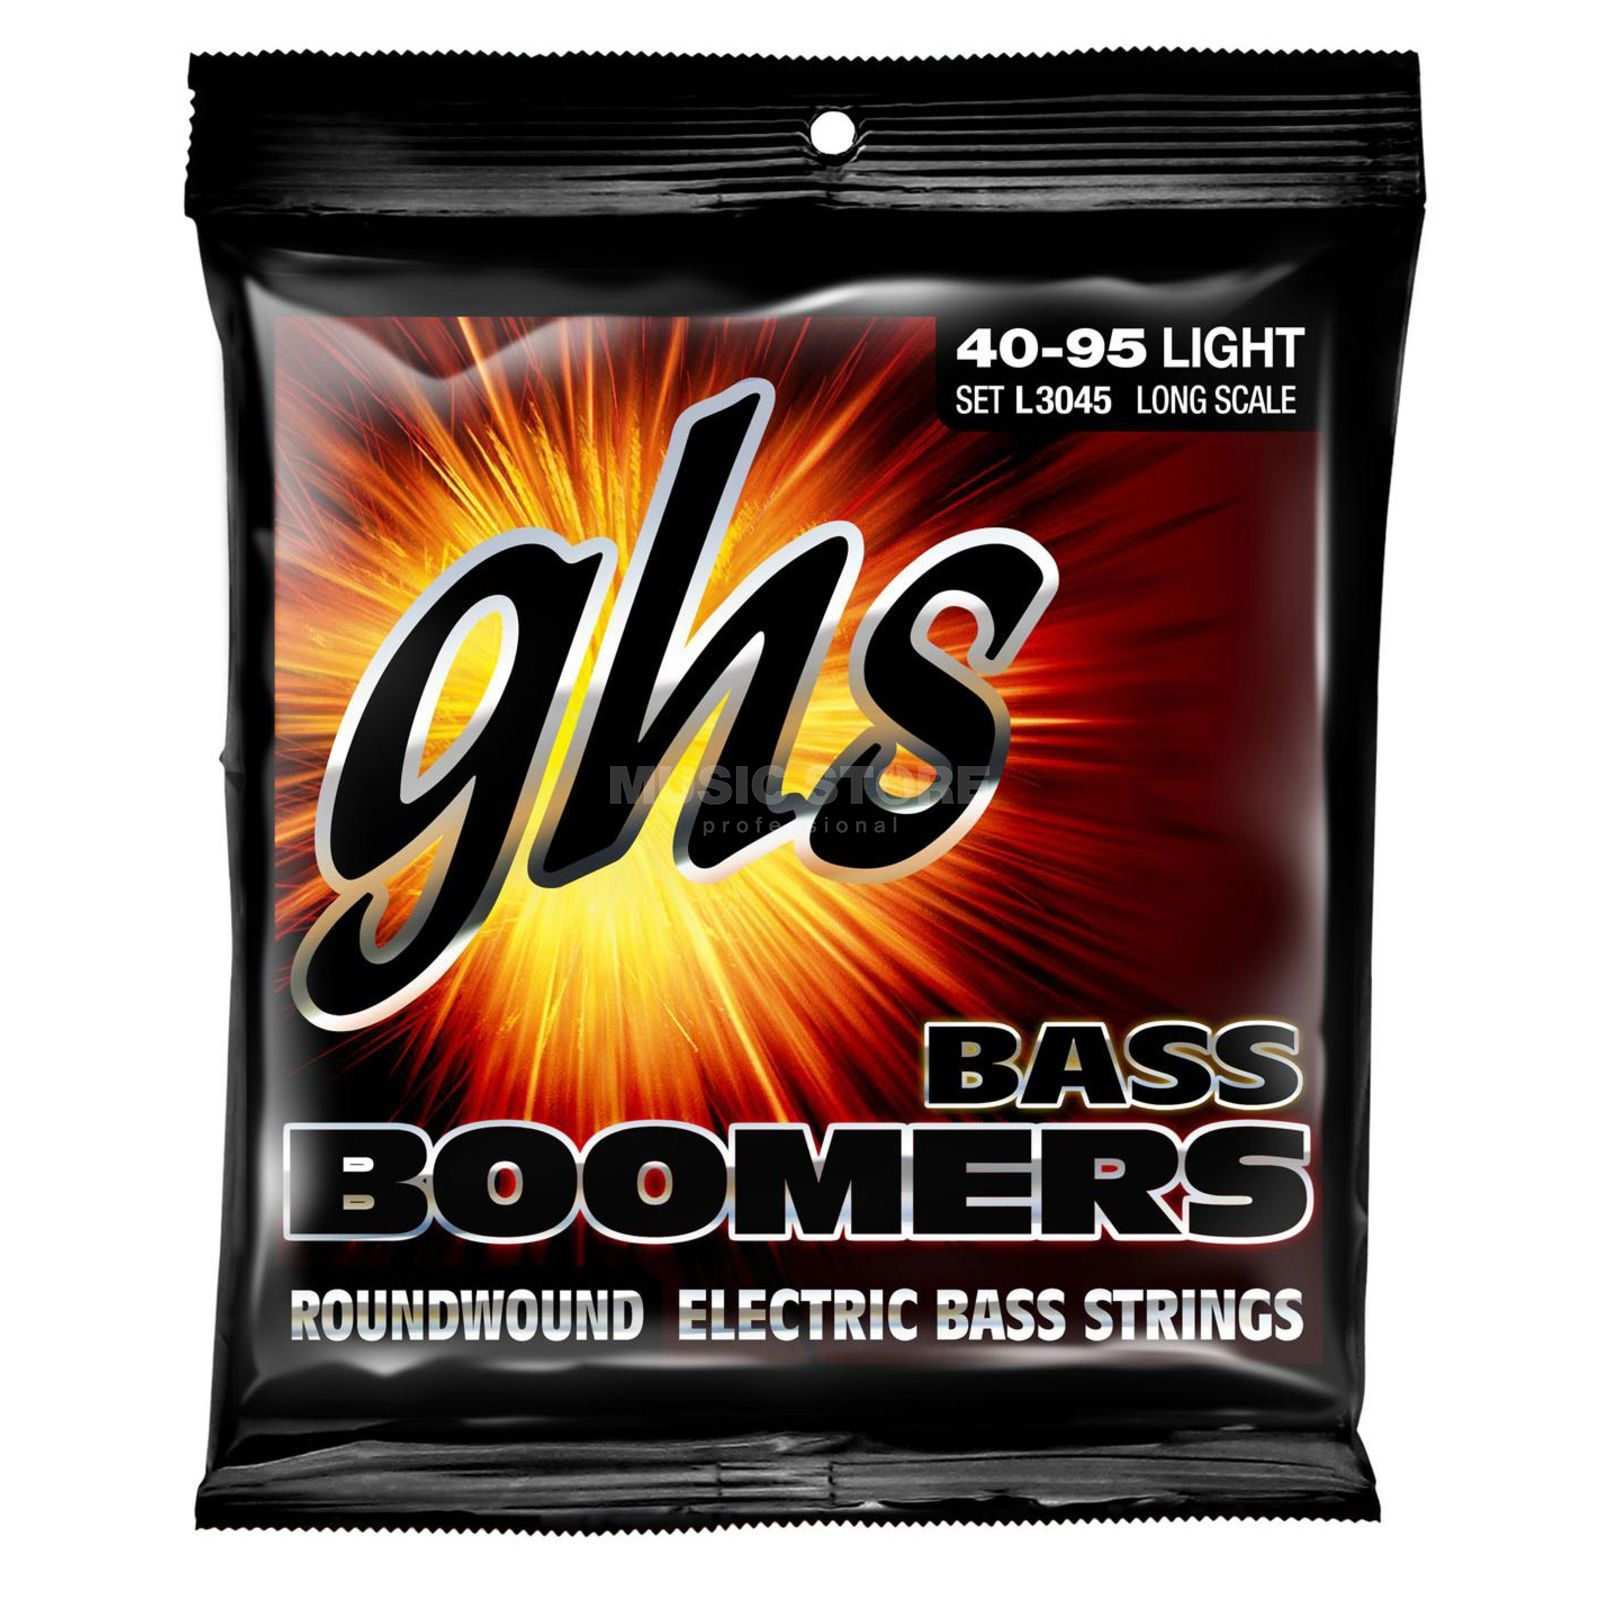 GHS 4er bas Boomers 40-95 uren Long Scale 40-55-75-95 Productafbeelding